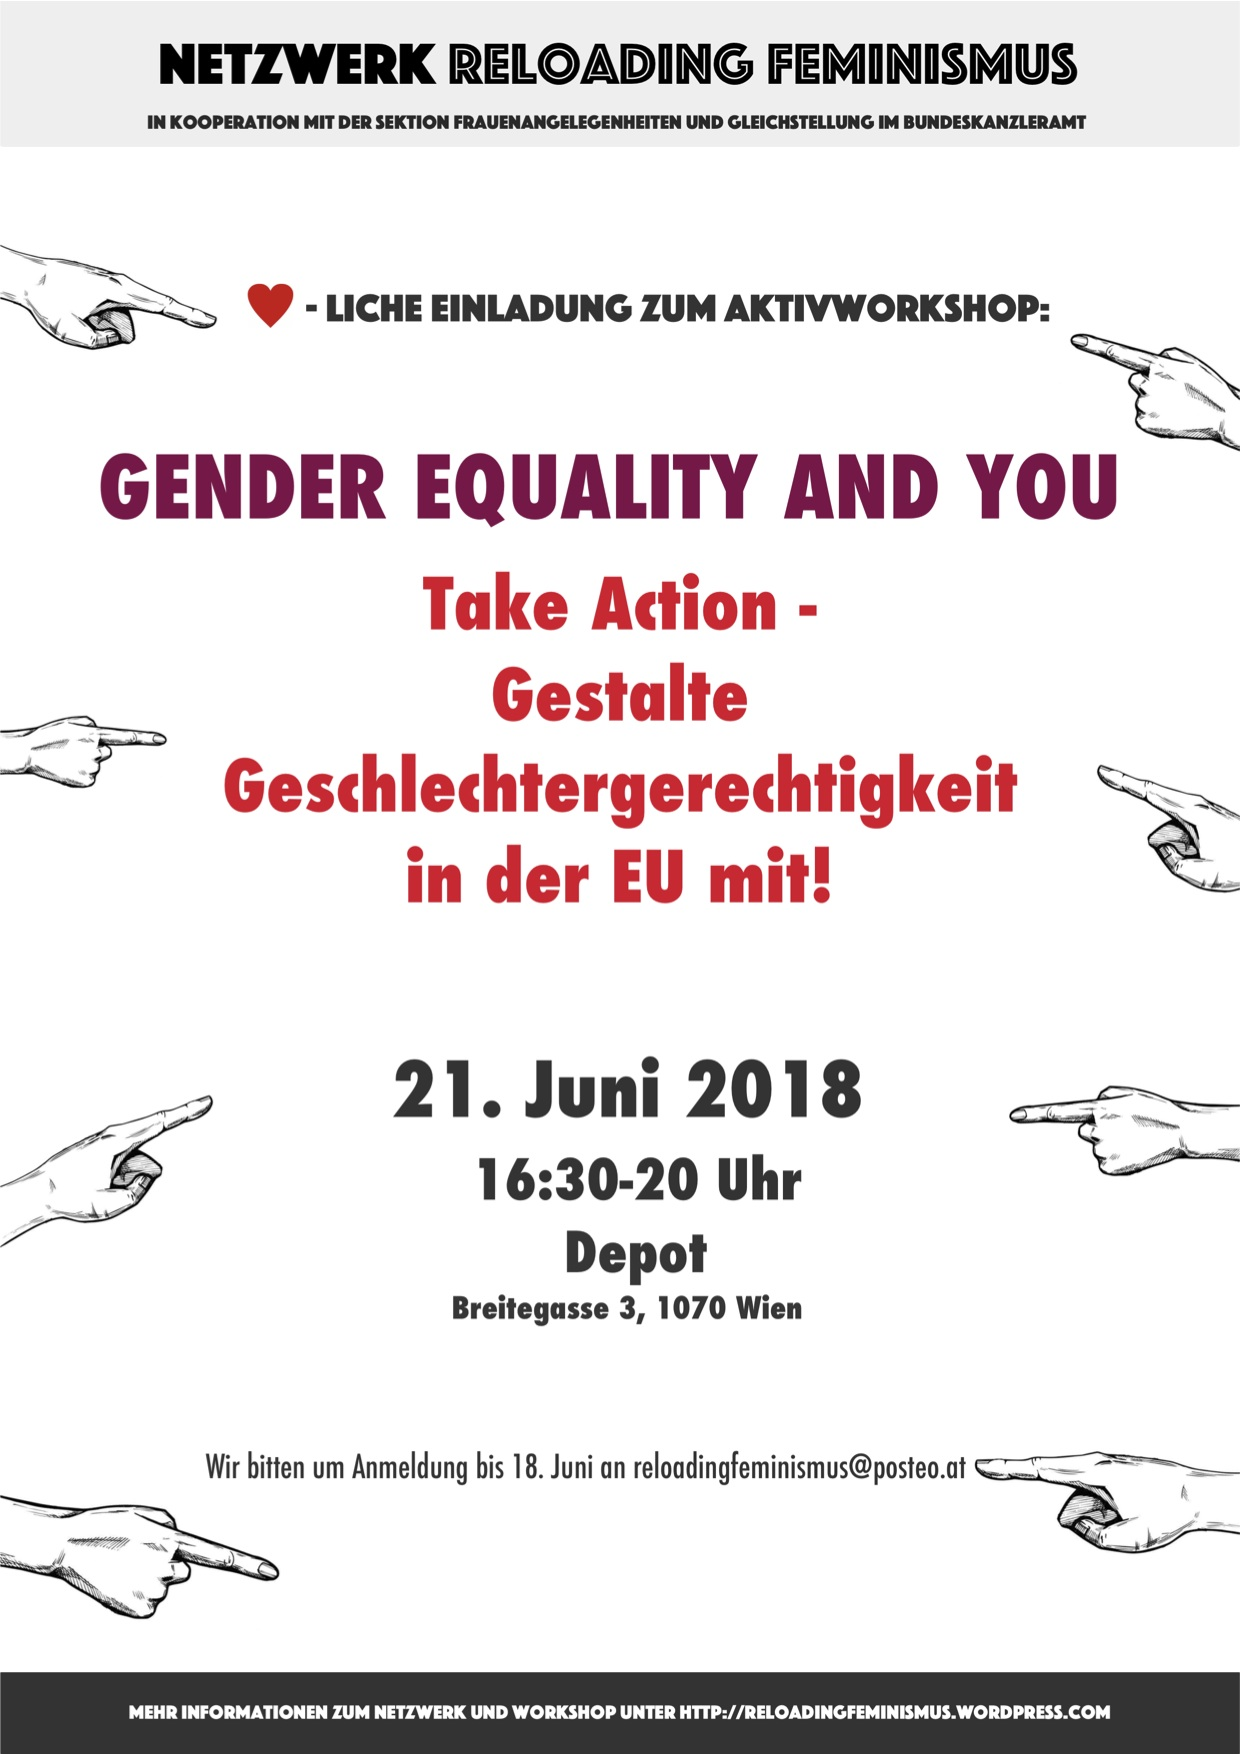 REloading Feminismus_Gender Equality and You_21-06-2018.jpg